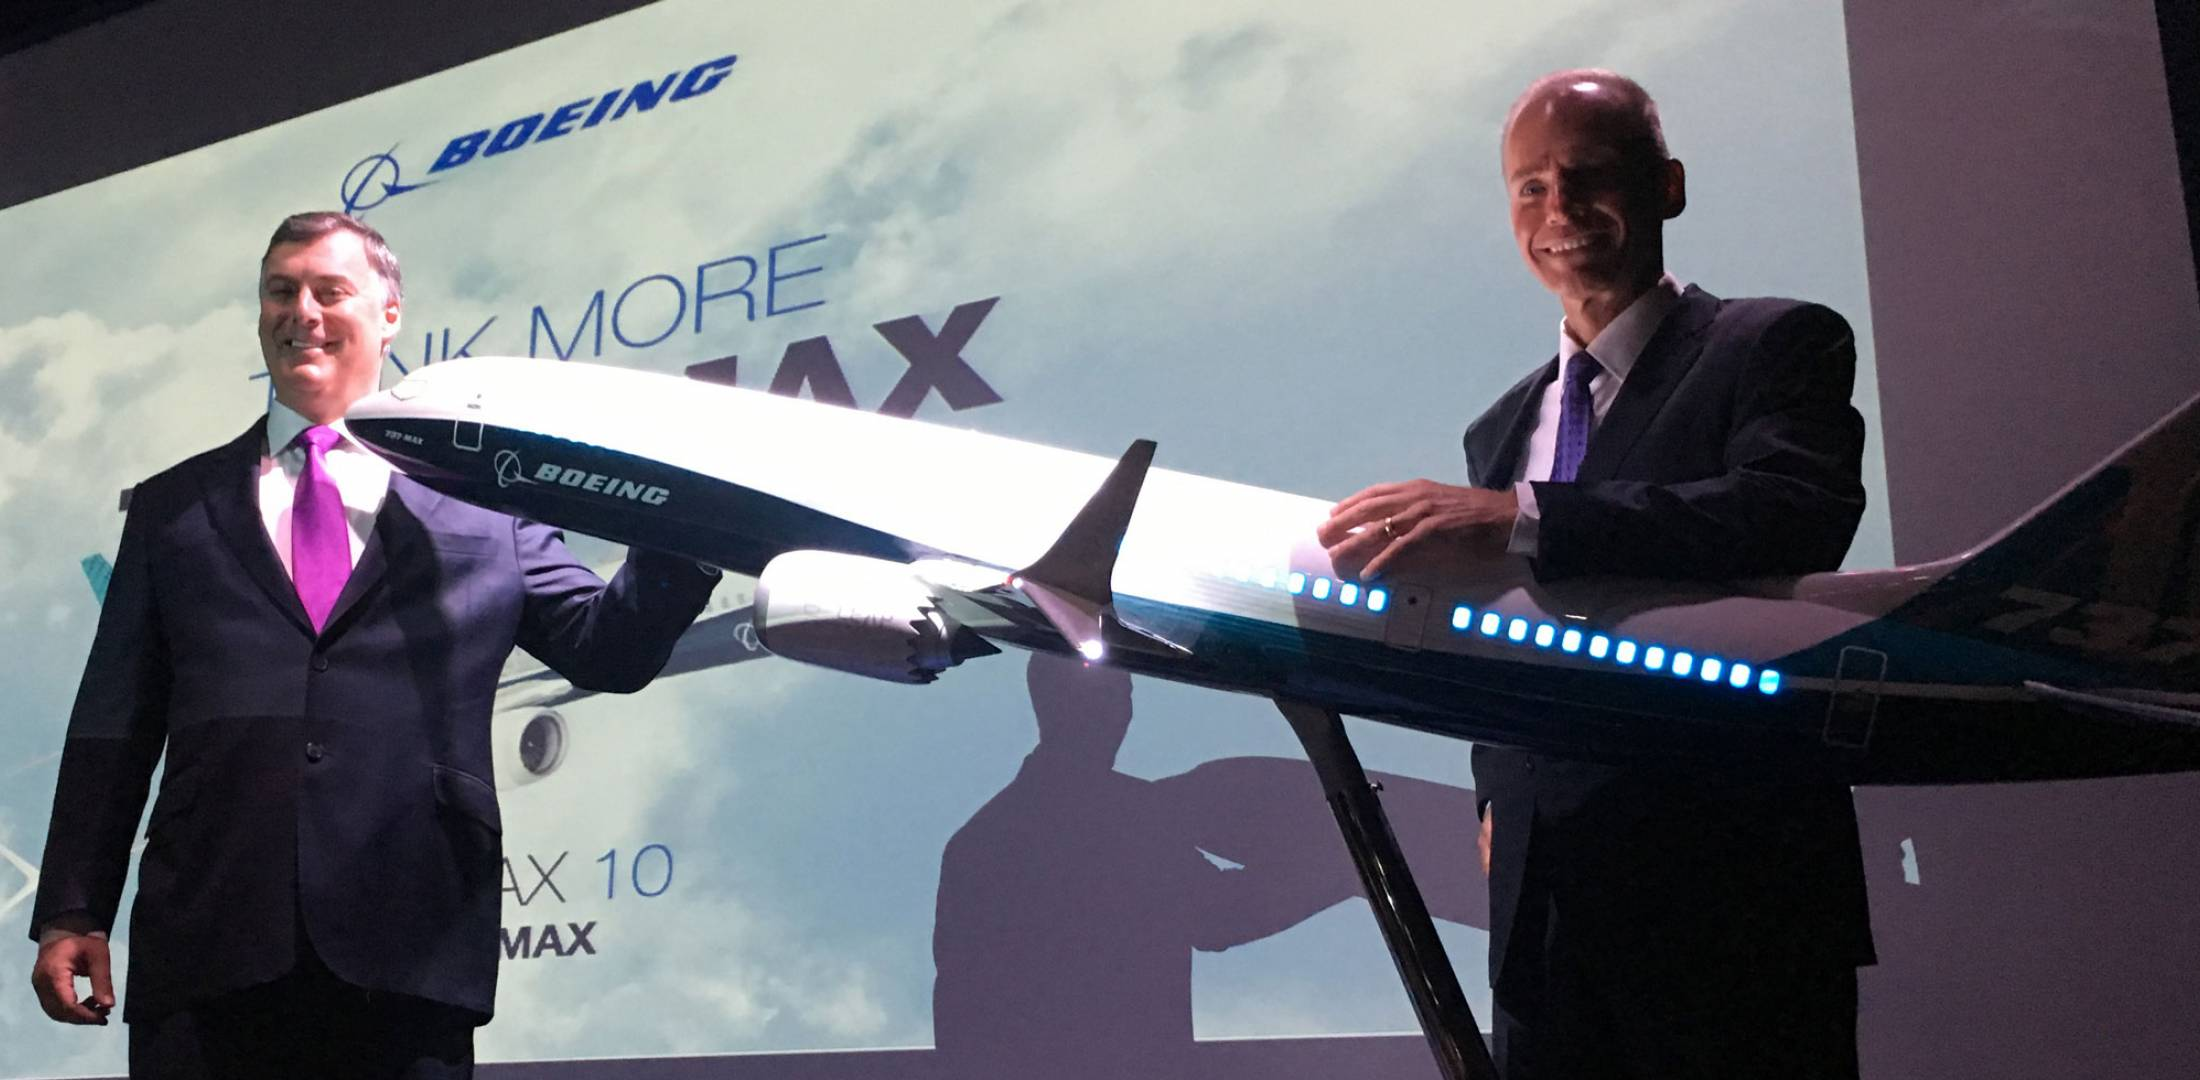 Boeing Commercial Airplanes CEO Kevin McAllister, left, and Boeing chairman and CEO Dennis Muilenburg officially launched the 737 Max 10.